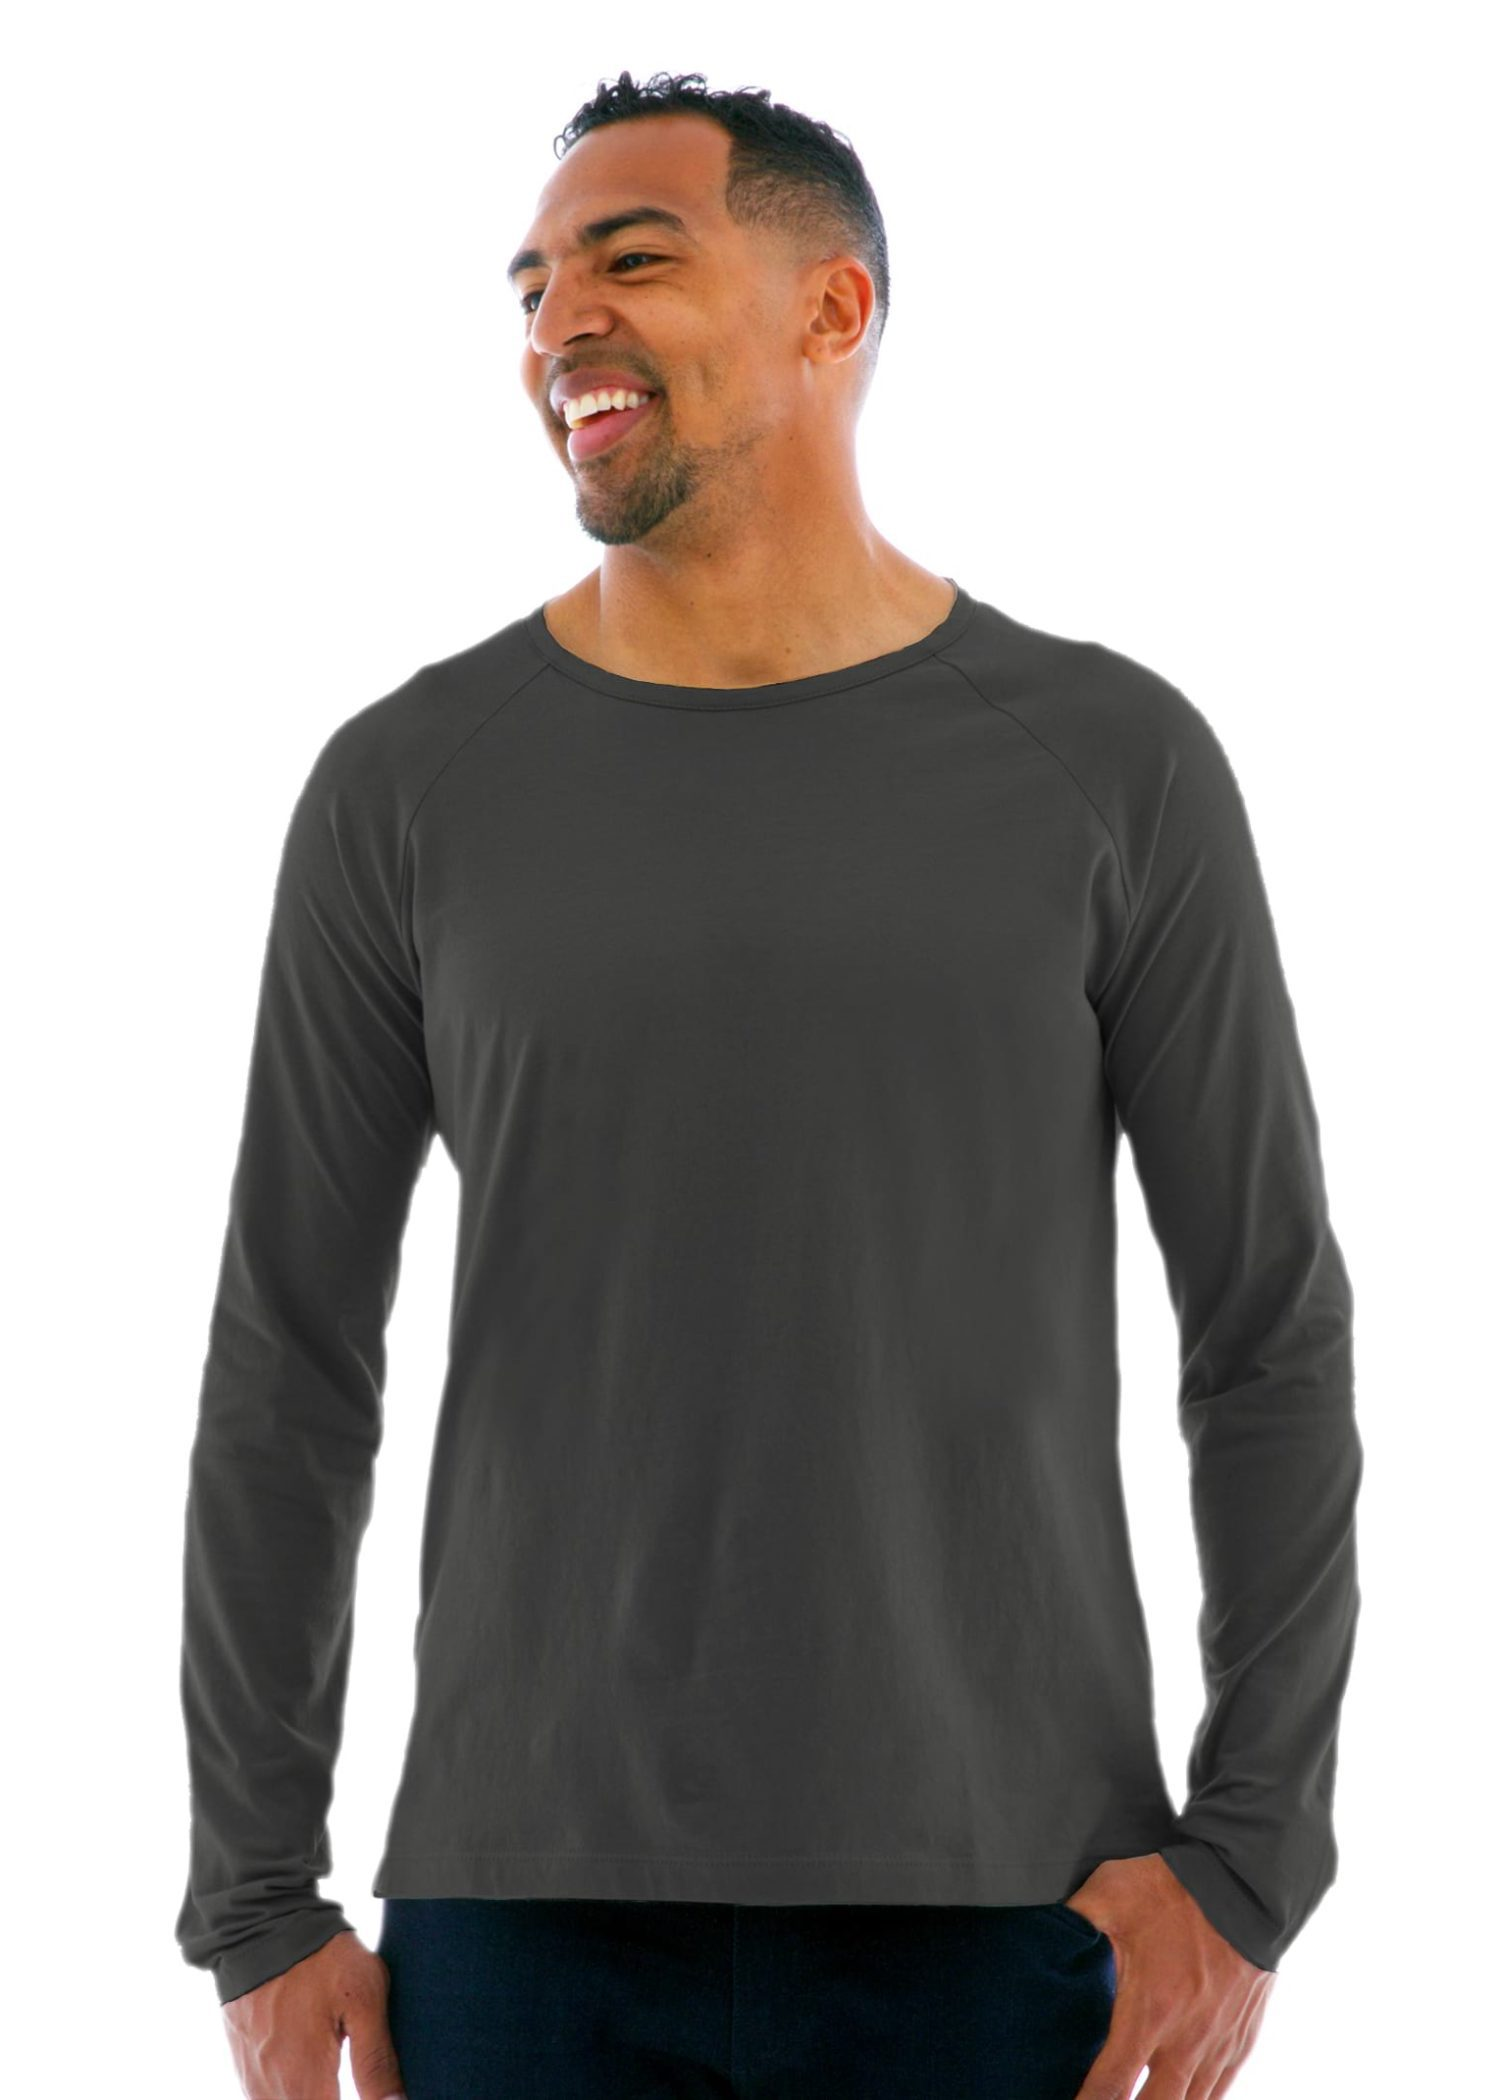 Long Sleeve Raglan Crew T-Shirt in Medium Gray